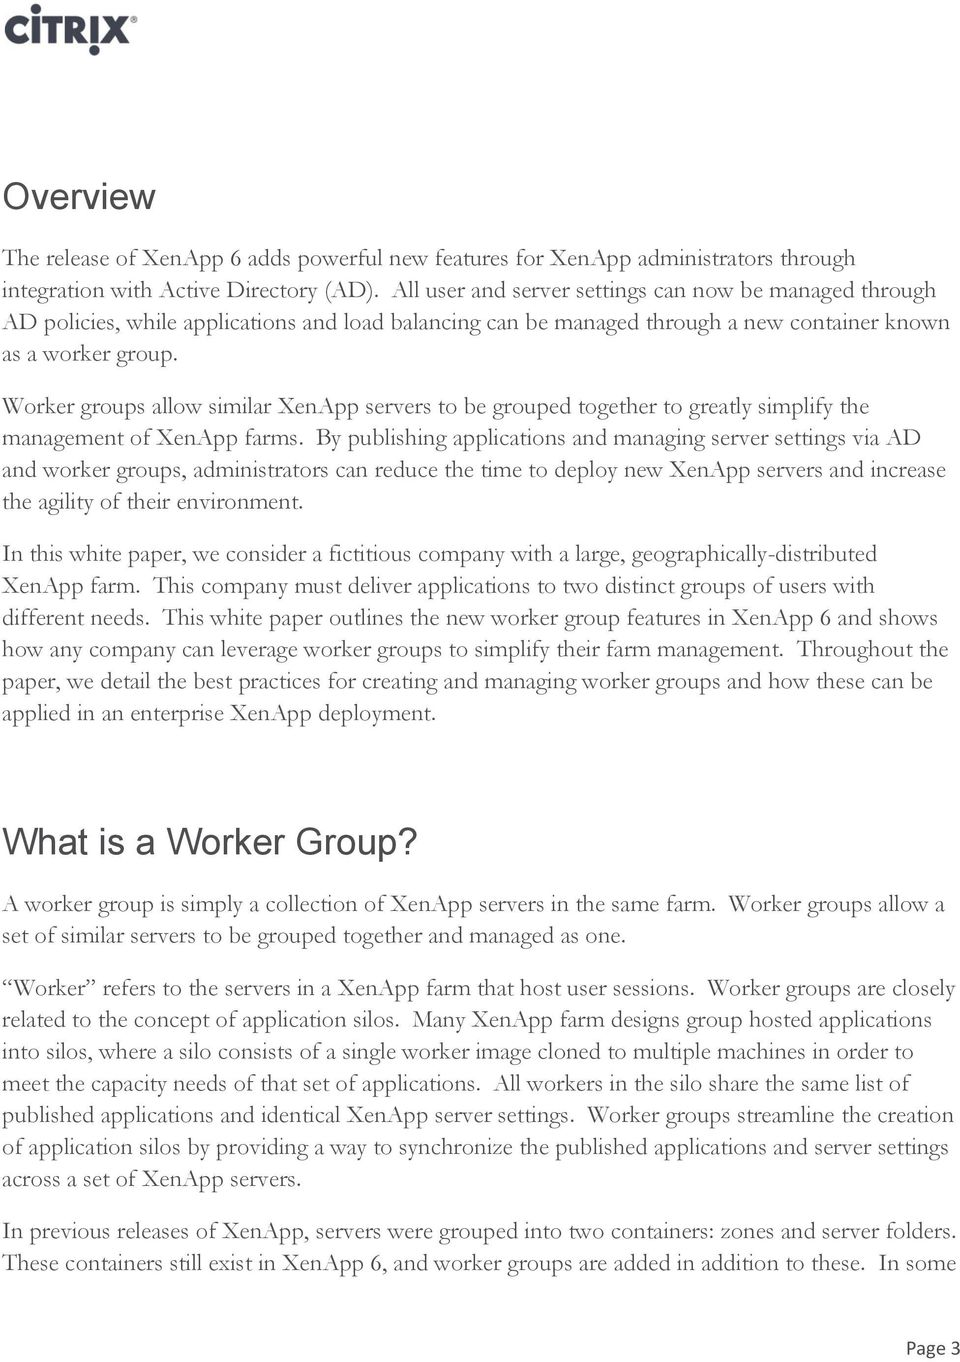 Worker groups allow similar XenApp servers to be grouped together to greatly simplify the management of XenApp farms.